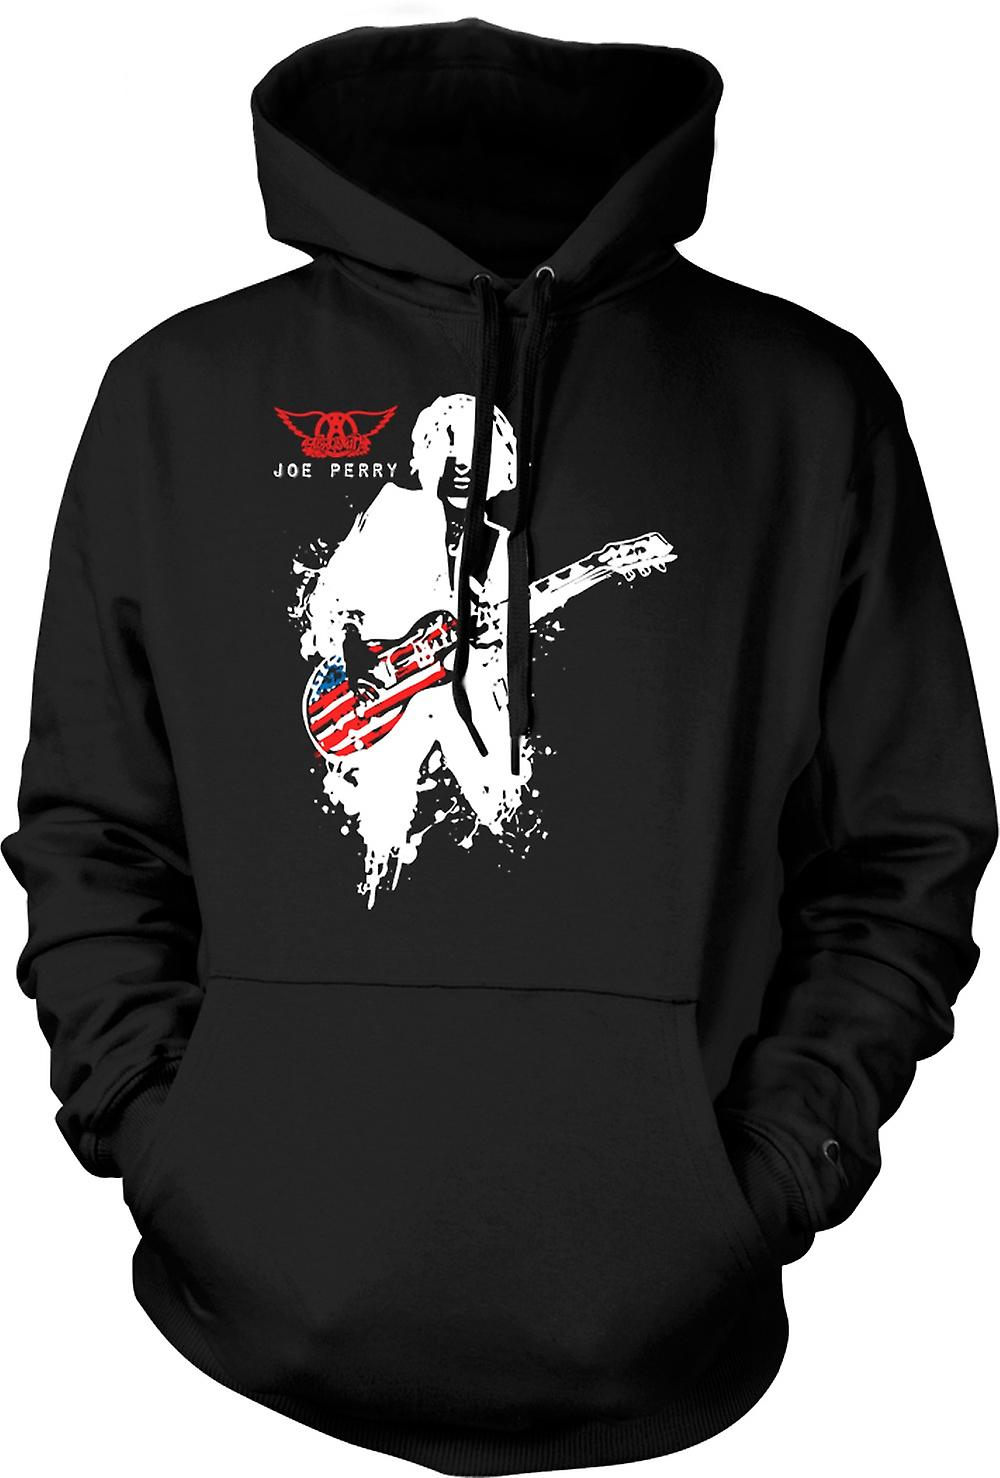 Kids Hoodie - Aerosmith - Joe Perry - Guitar